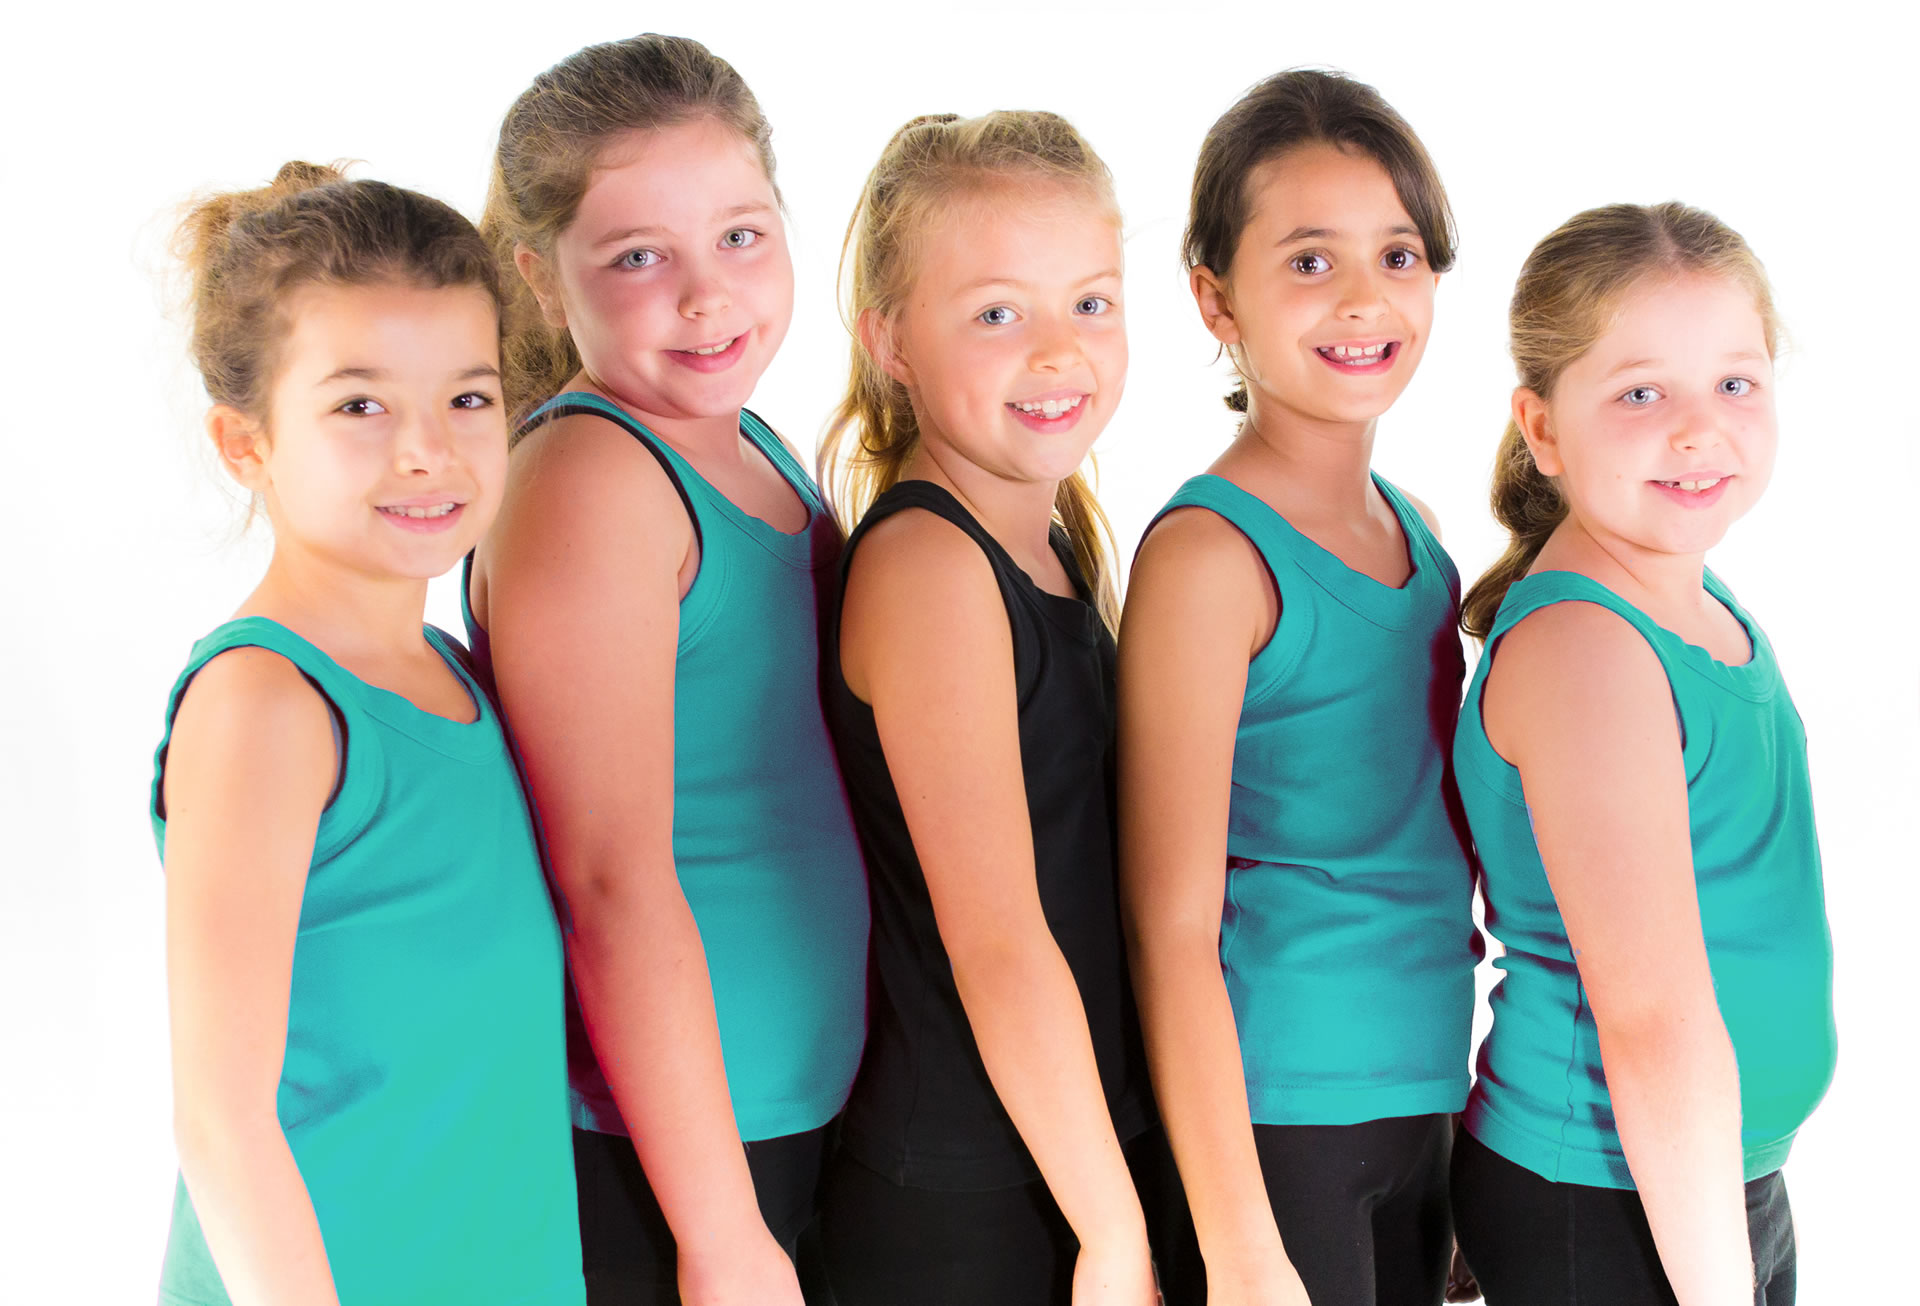 5 Girls ready to dance at Studio N Dance